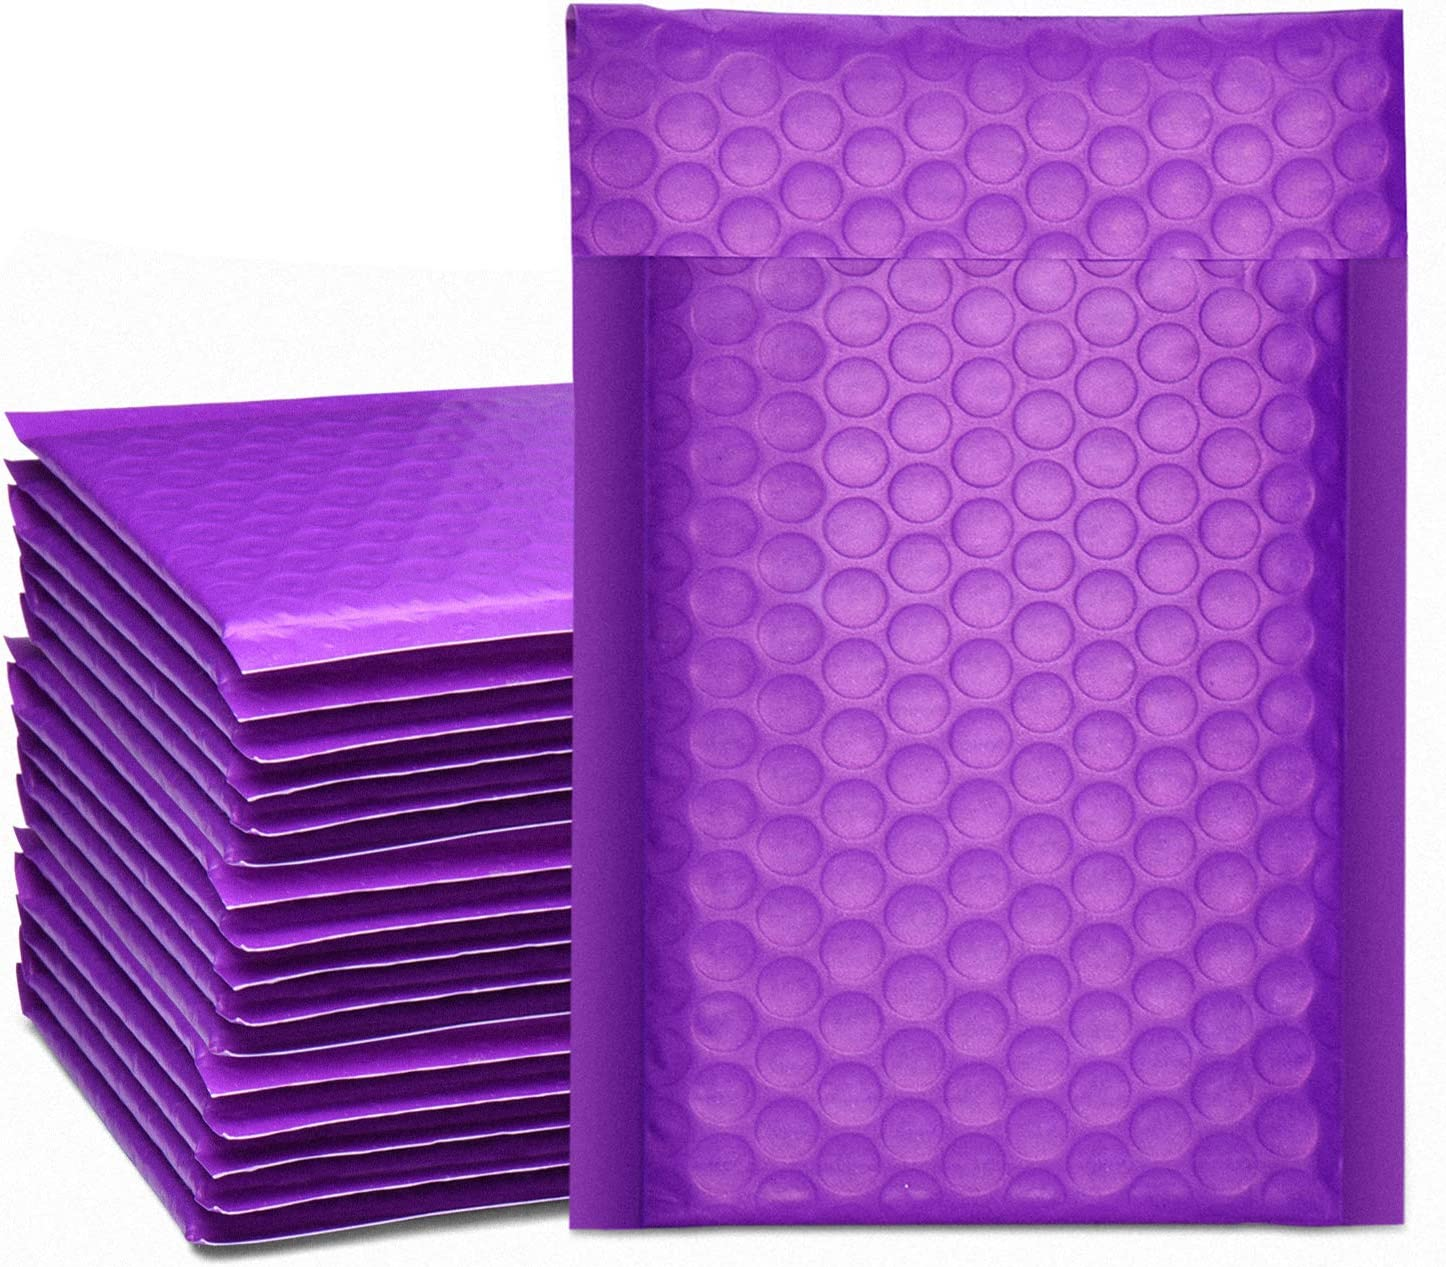 Pack of 10 Padded Shipping Envelope Mailers Secure Seal #000 4x8 Poly Bubble Mailers Small